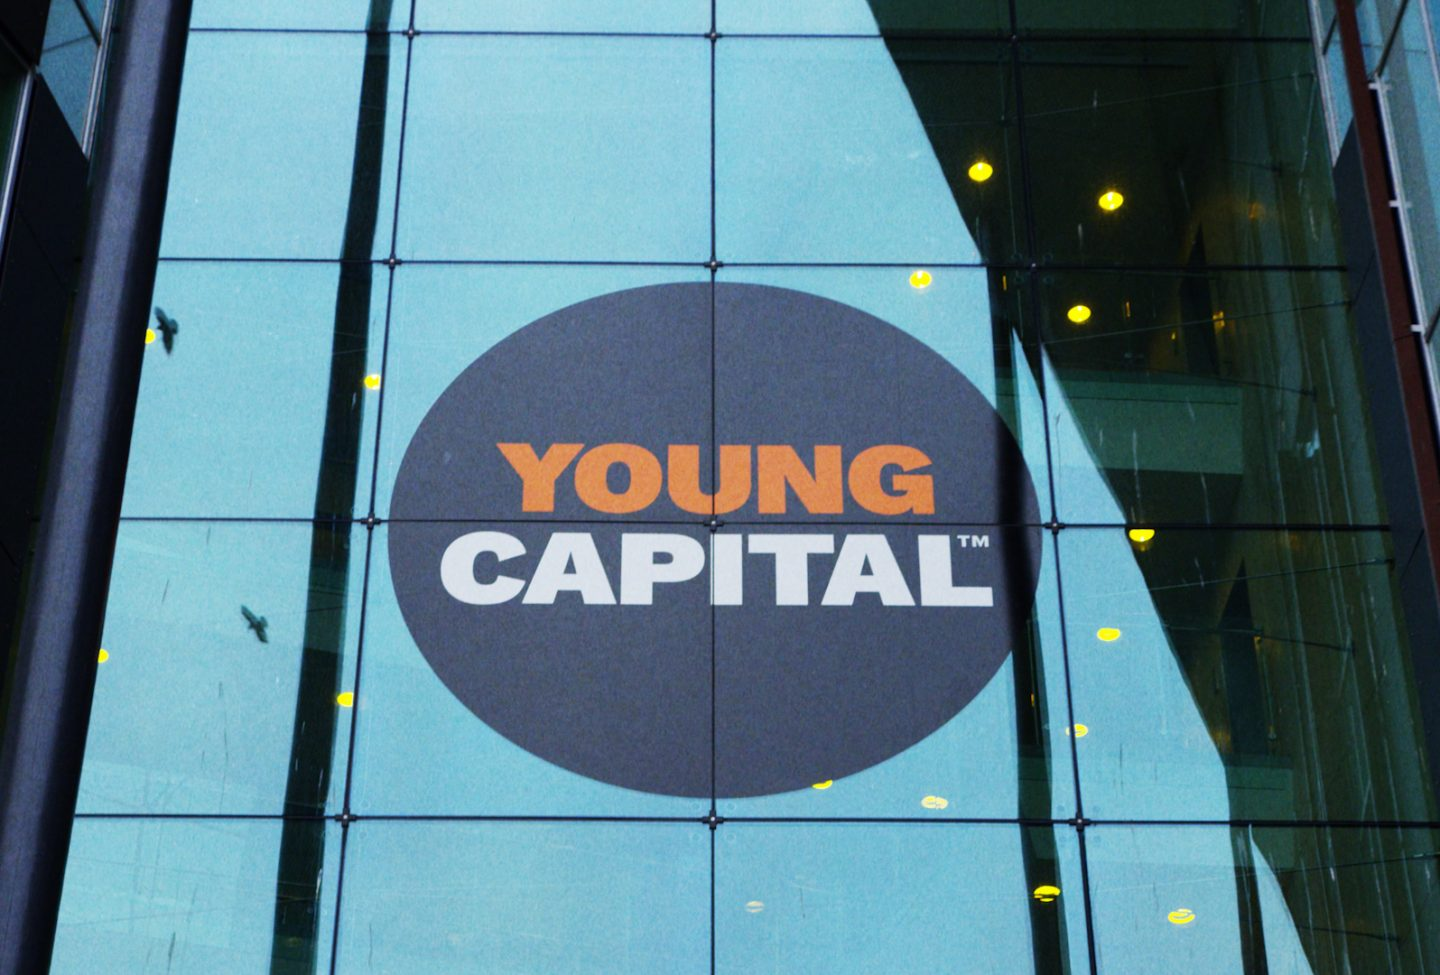 YoungCapital: 'This Was Our Smoothest IT Project Ever'